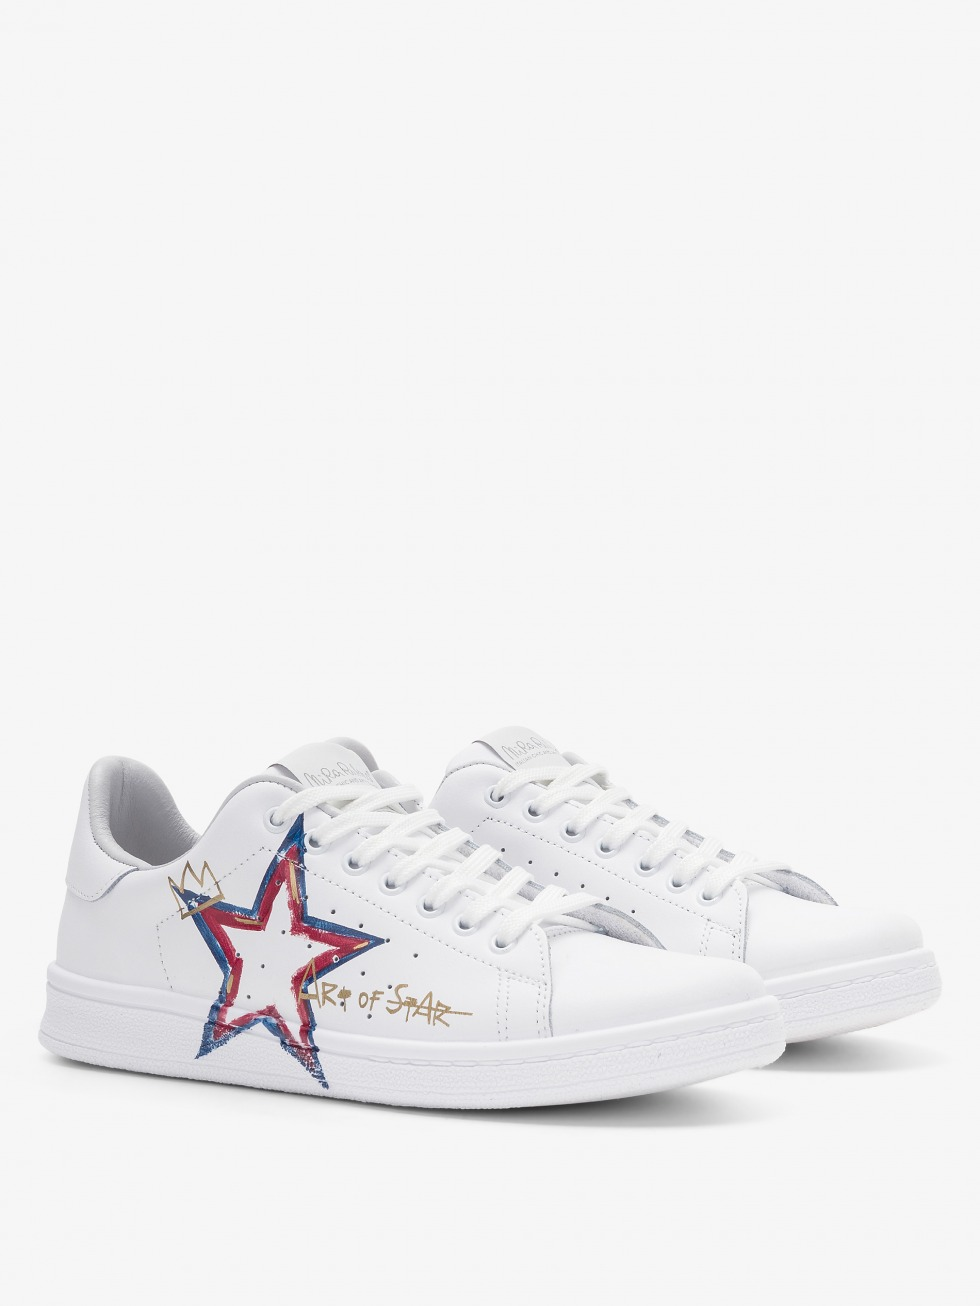 Daiquiri White Sneakers - Red and Blue Art Of Star